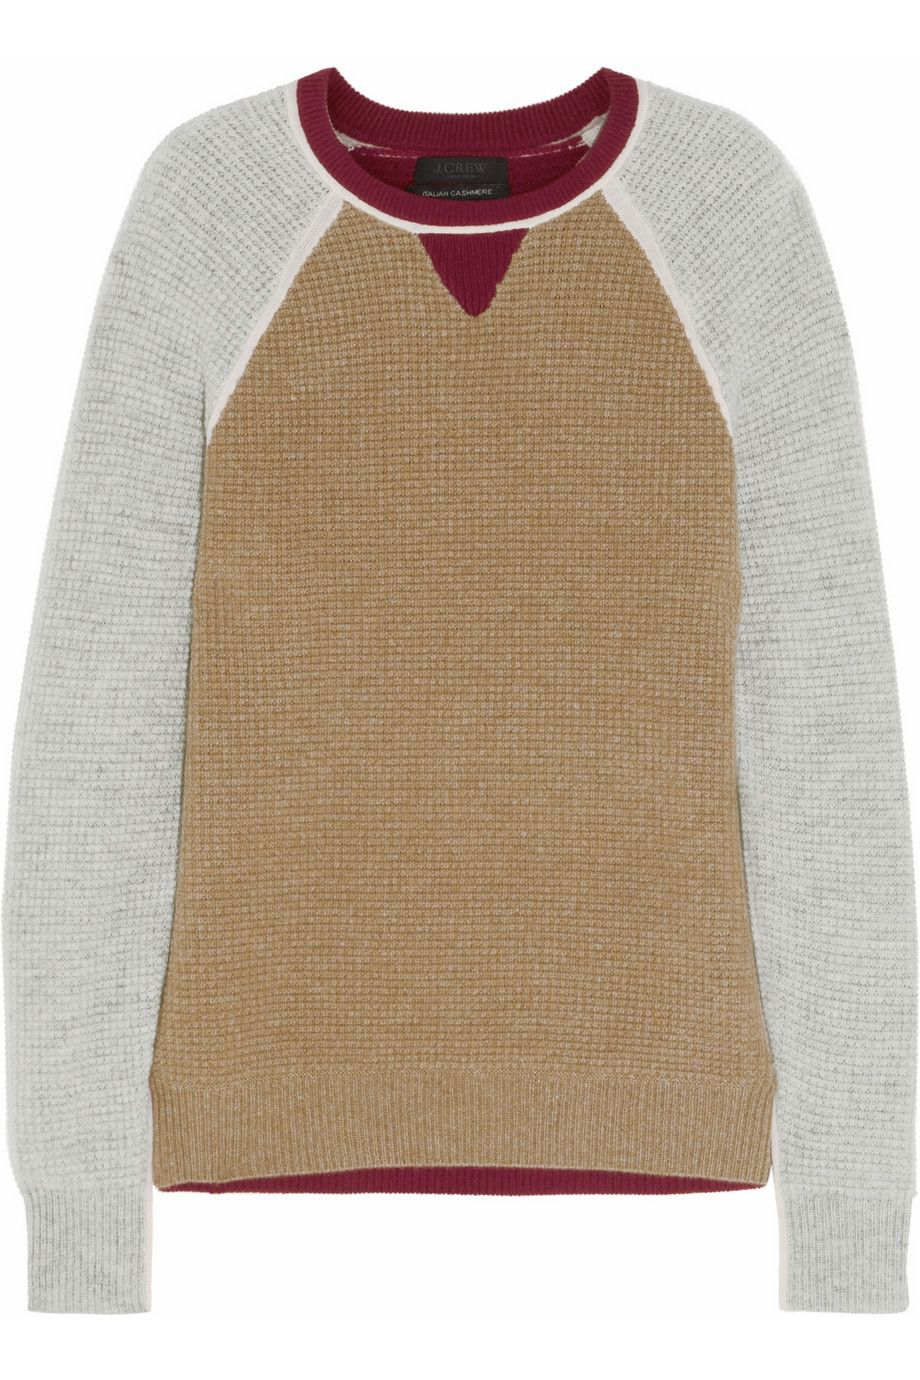 J.Crew | Paxton waffle-knit cashmere sweater | NET-A-PORTER.COM I ...